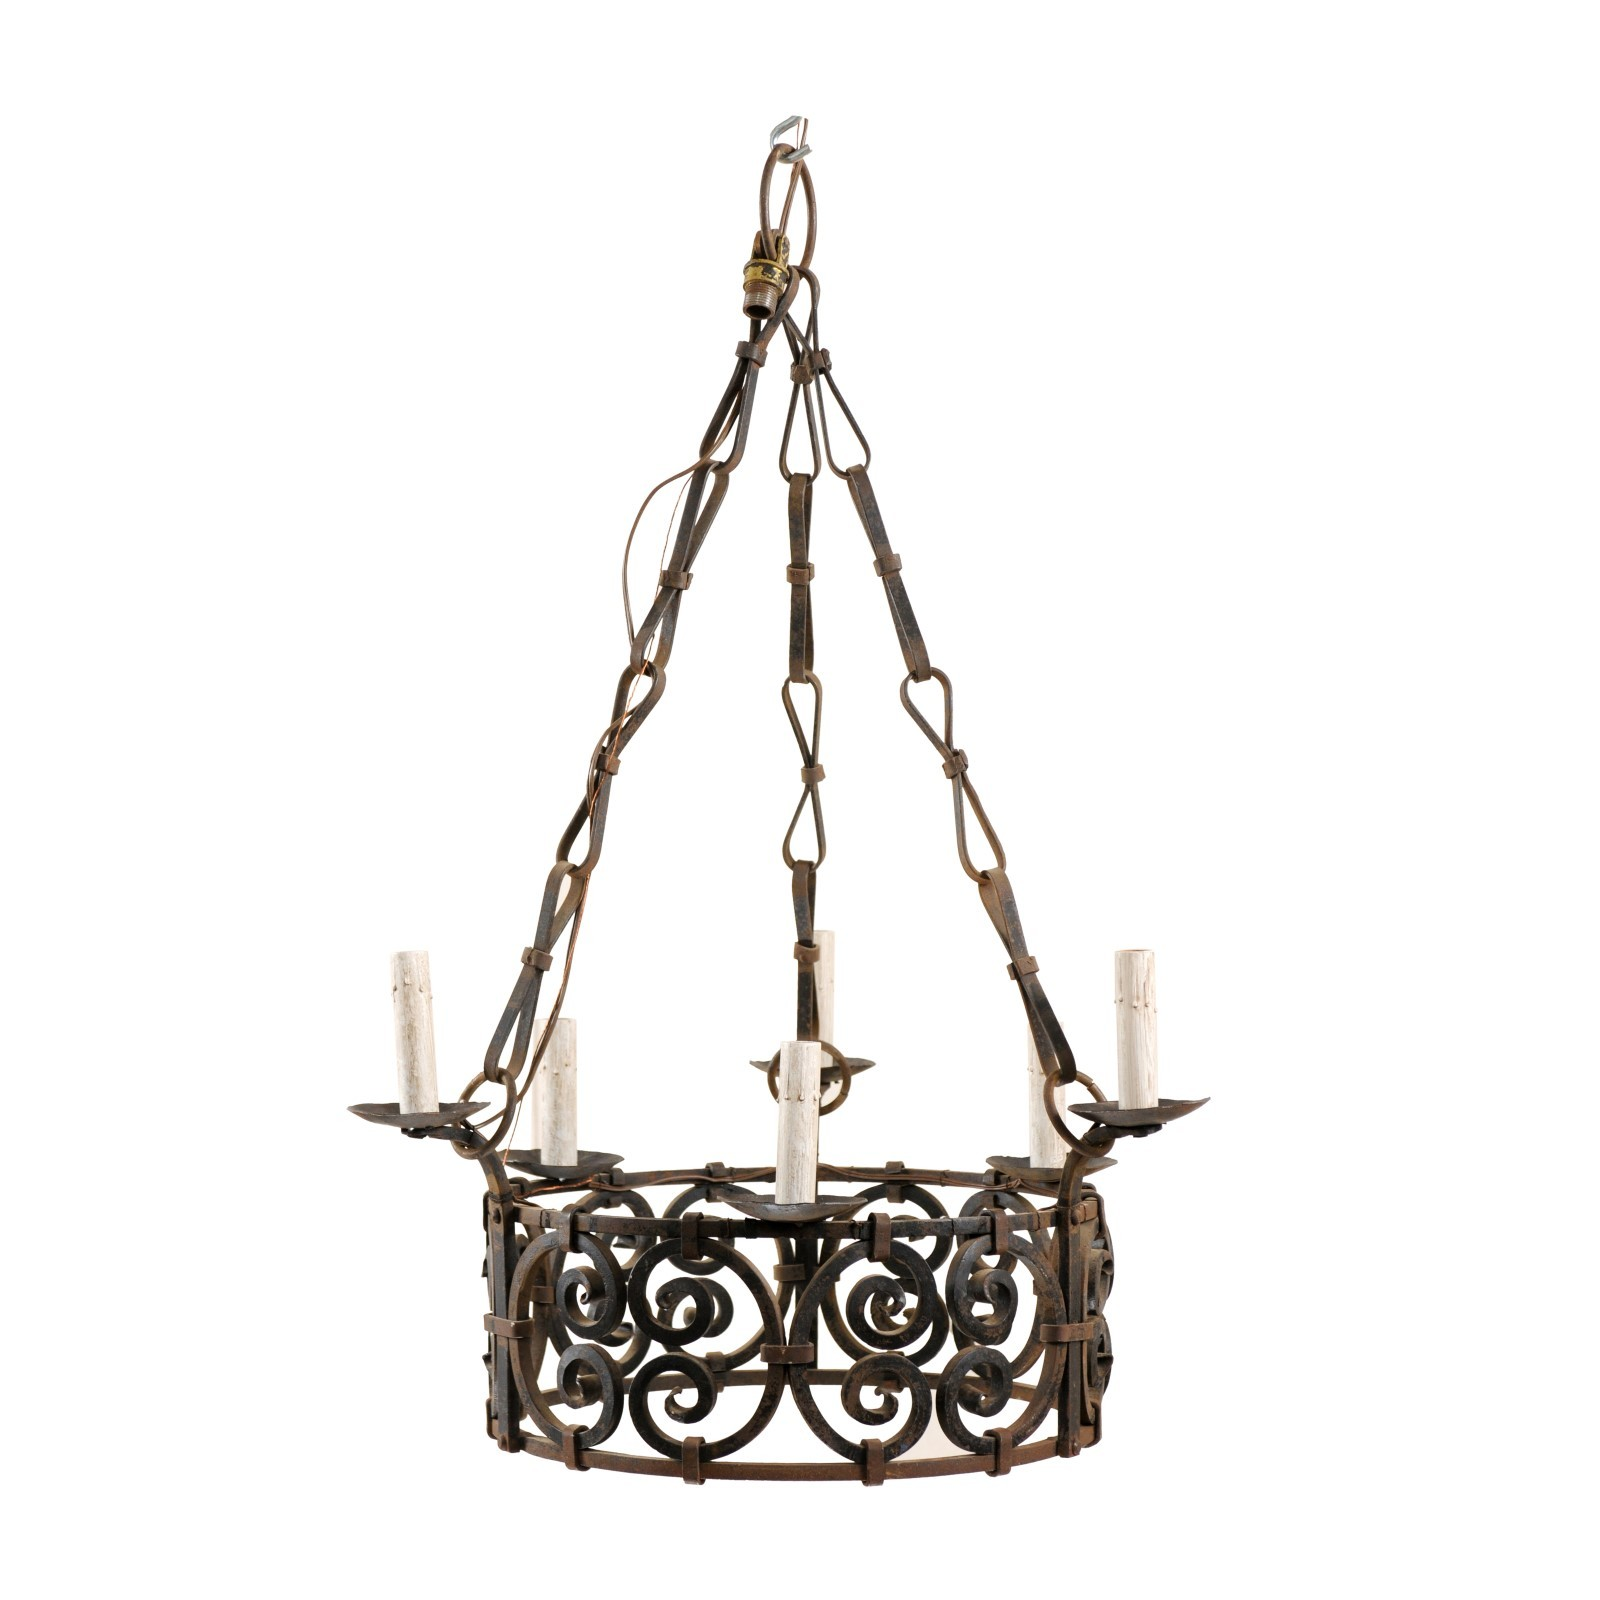 Intricate French Ring Chandelier